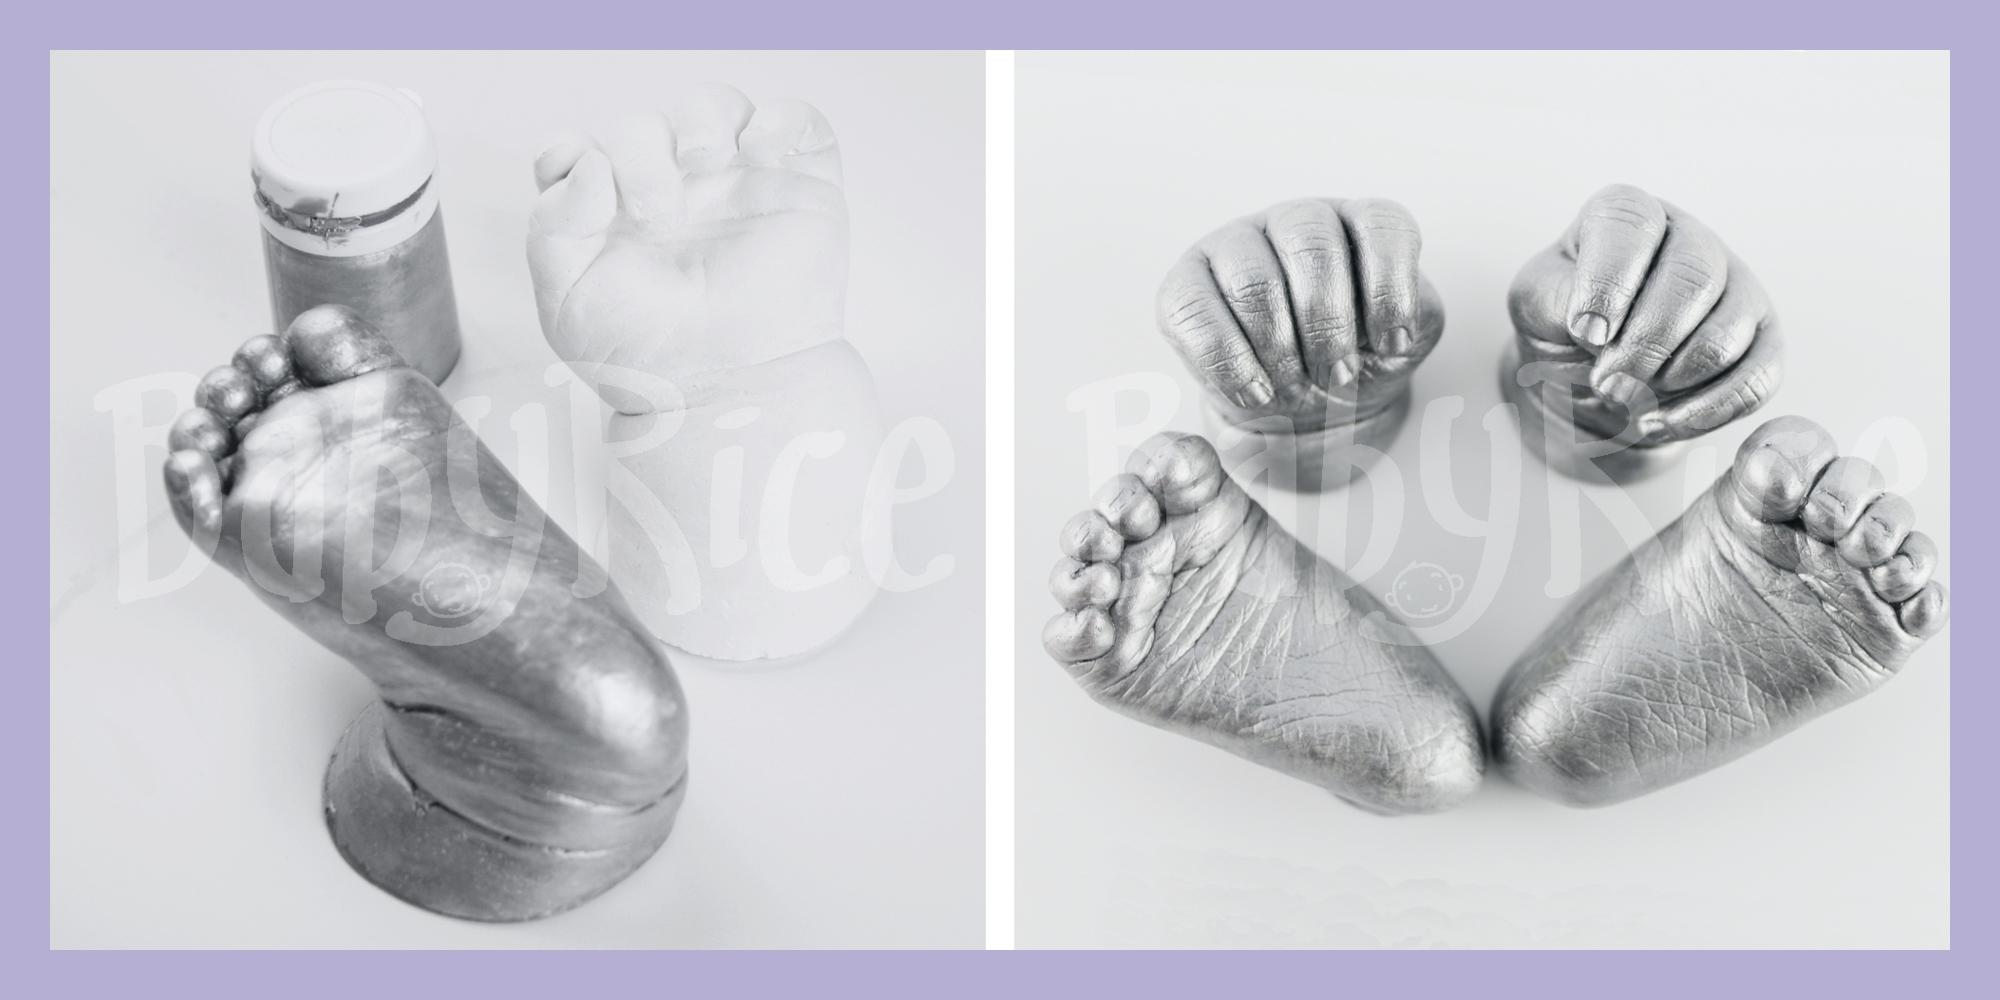 Silver Painted Baby Hand and Foot Casts